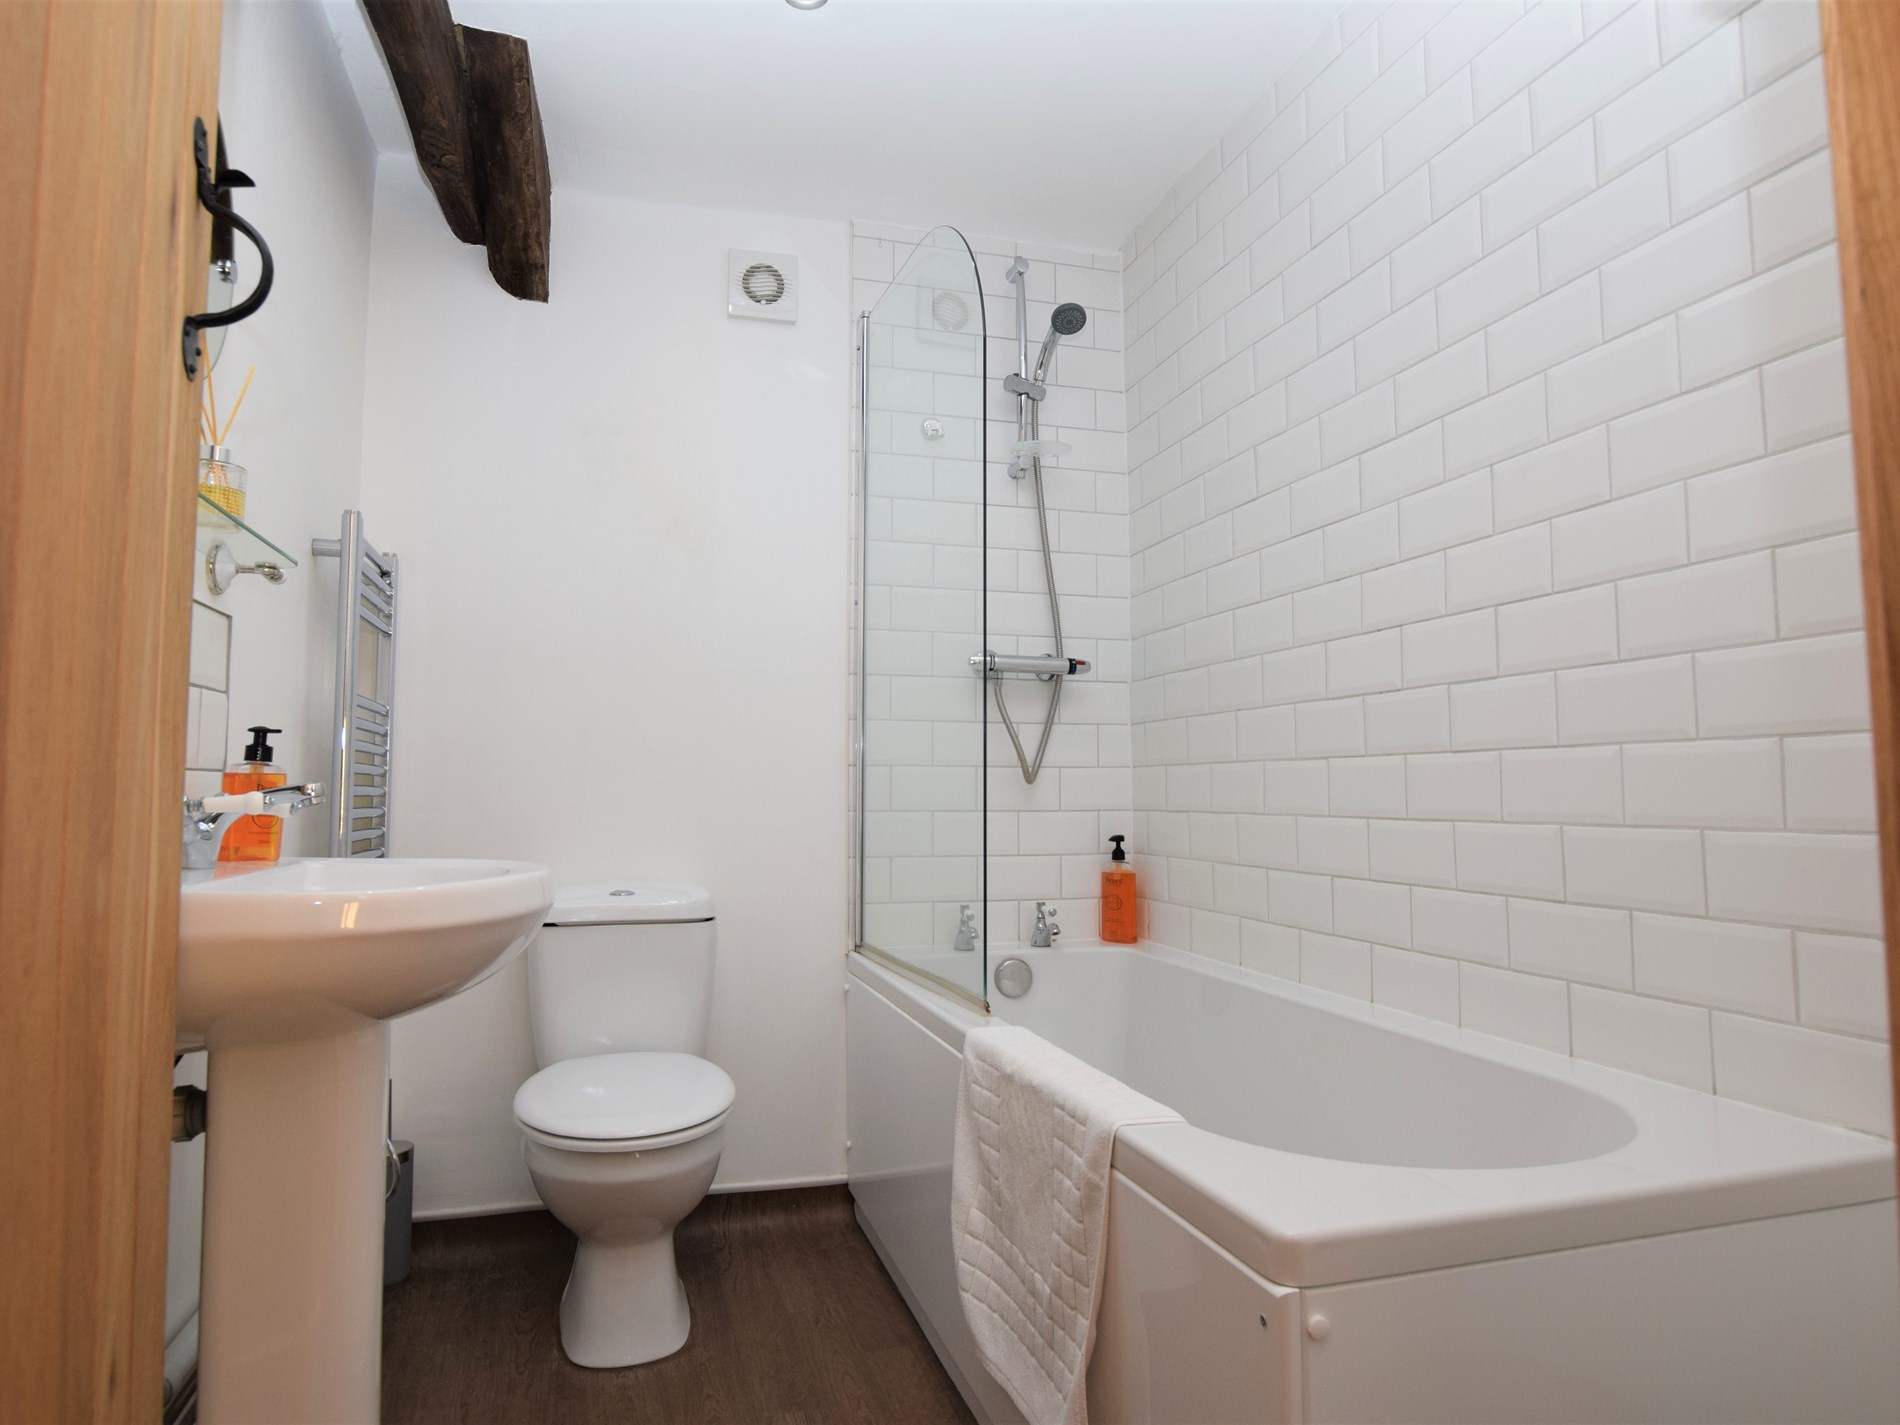 2 Bedroom Cottage in Banbury, Heart of England